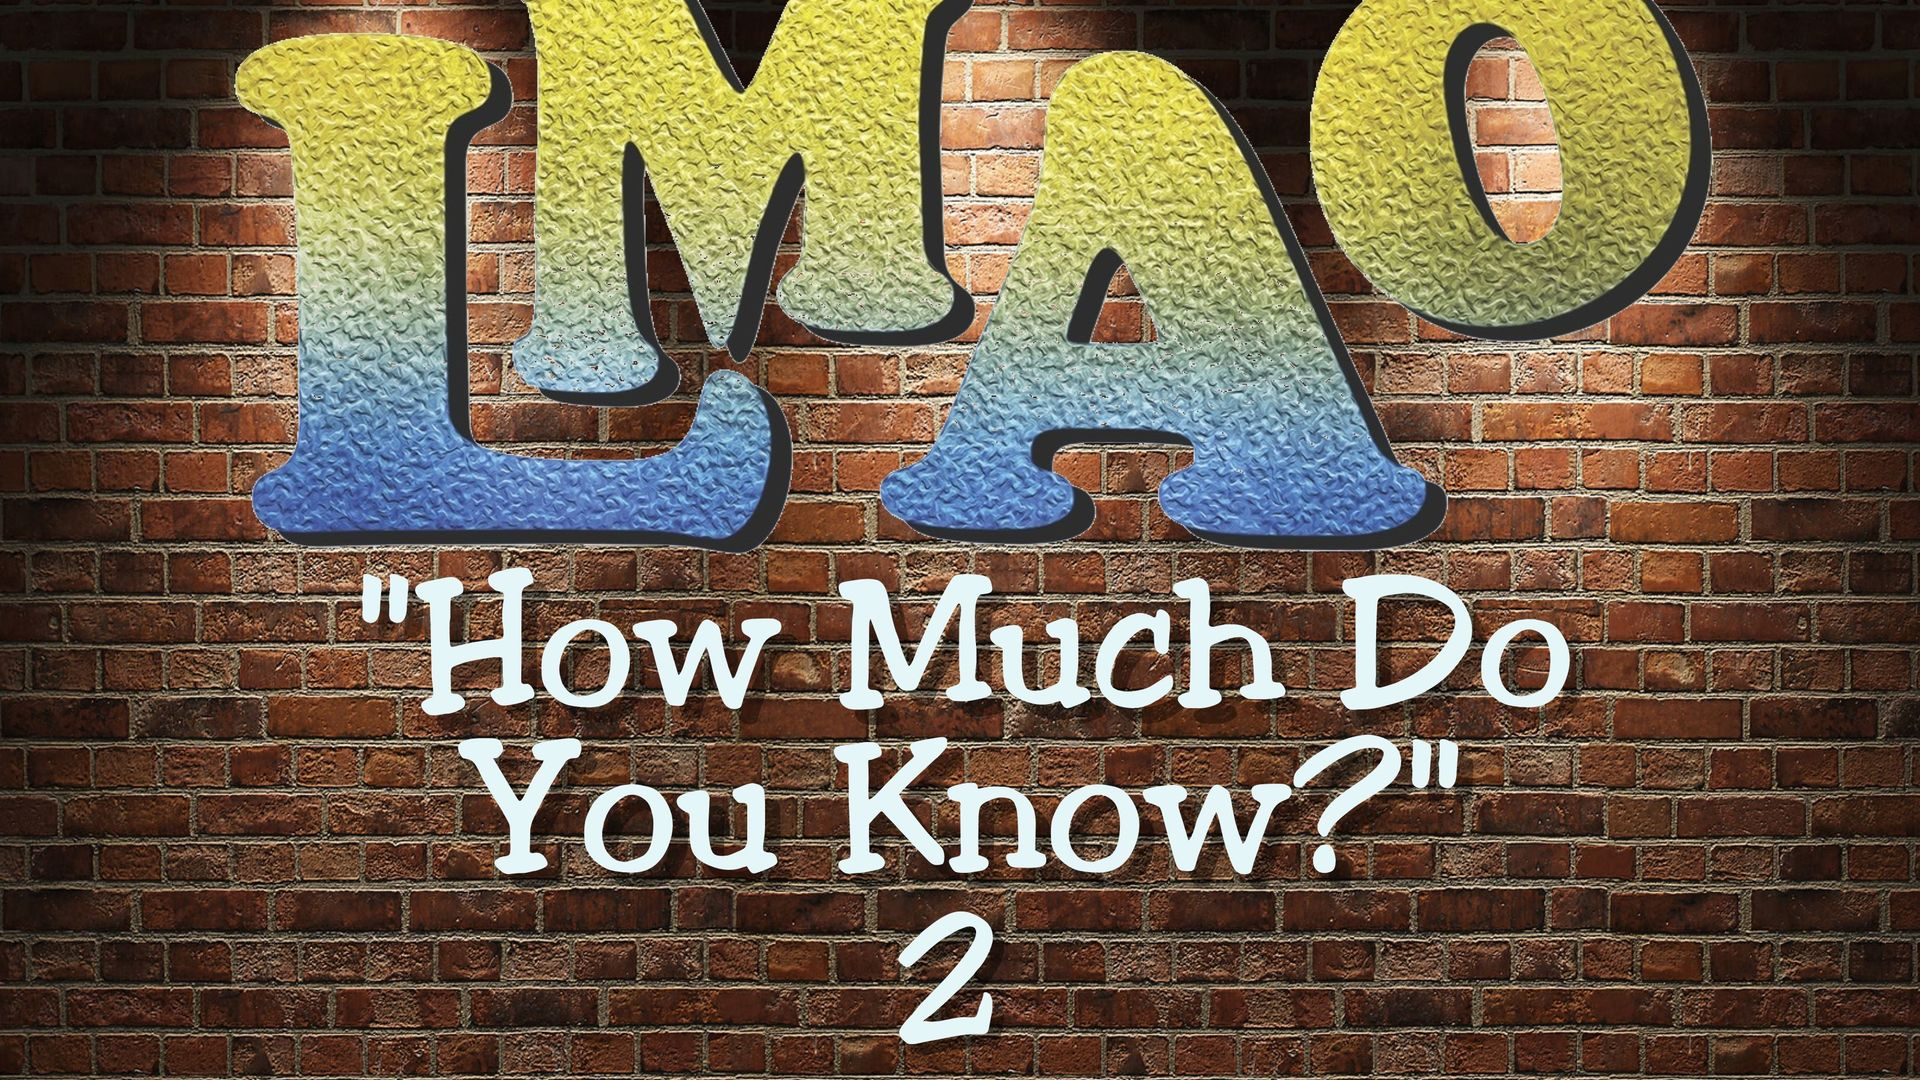 LMAO - How much doYOU know? Episode 2